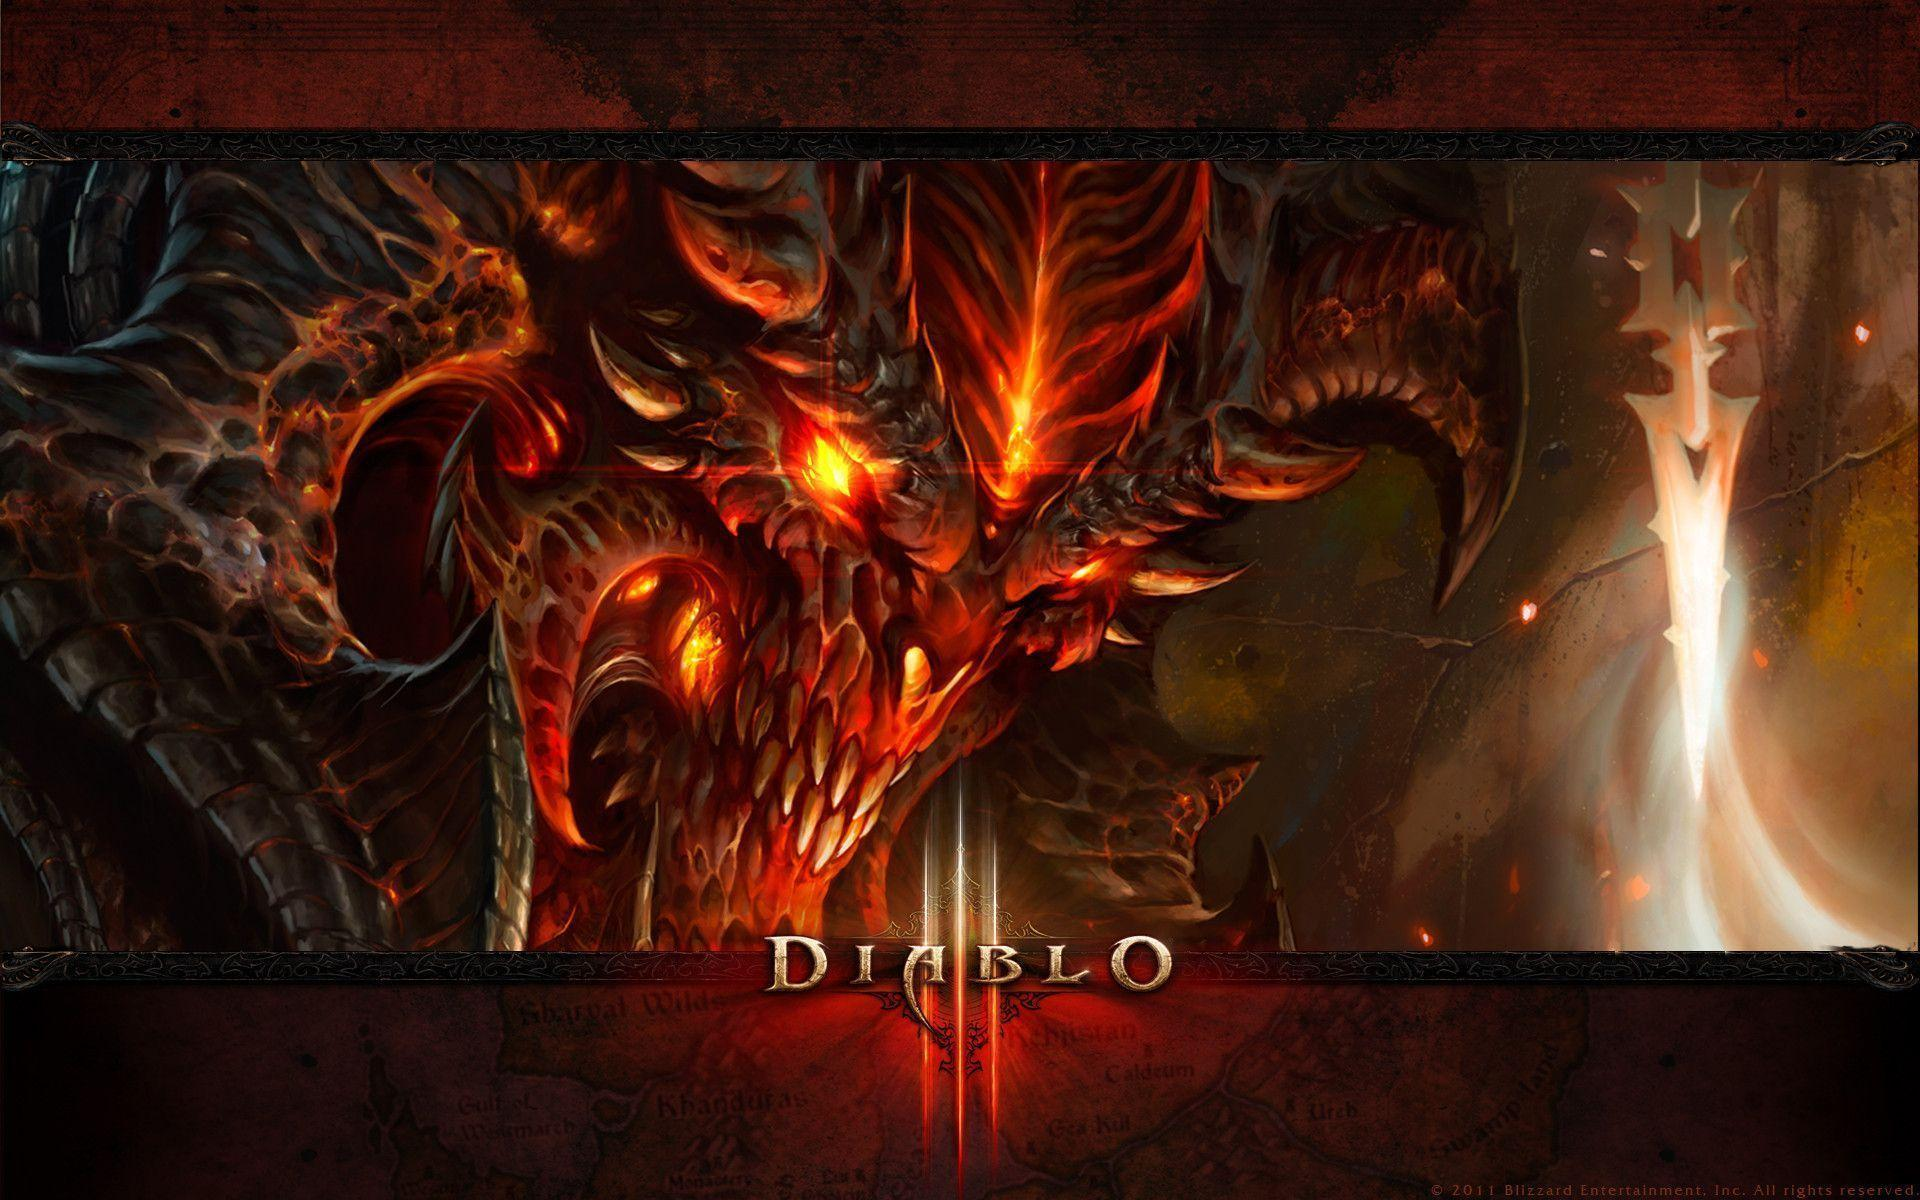 Diablo 3 Wallpaper (HD)